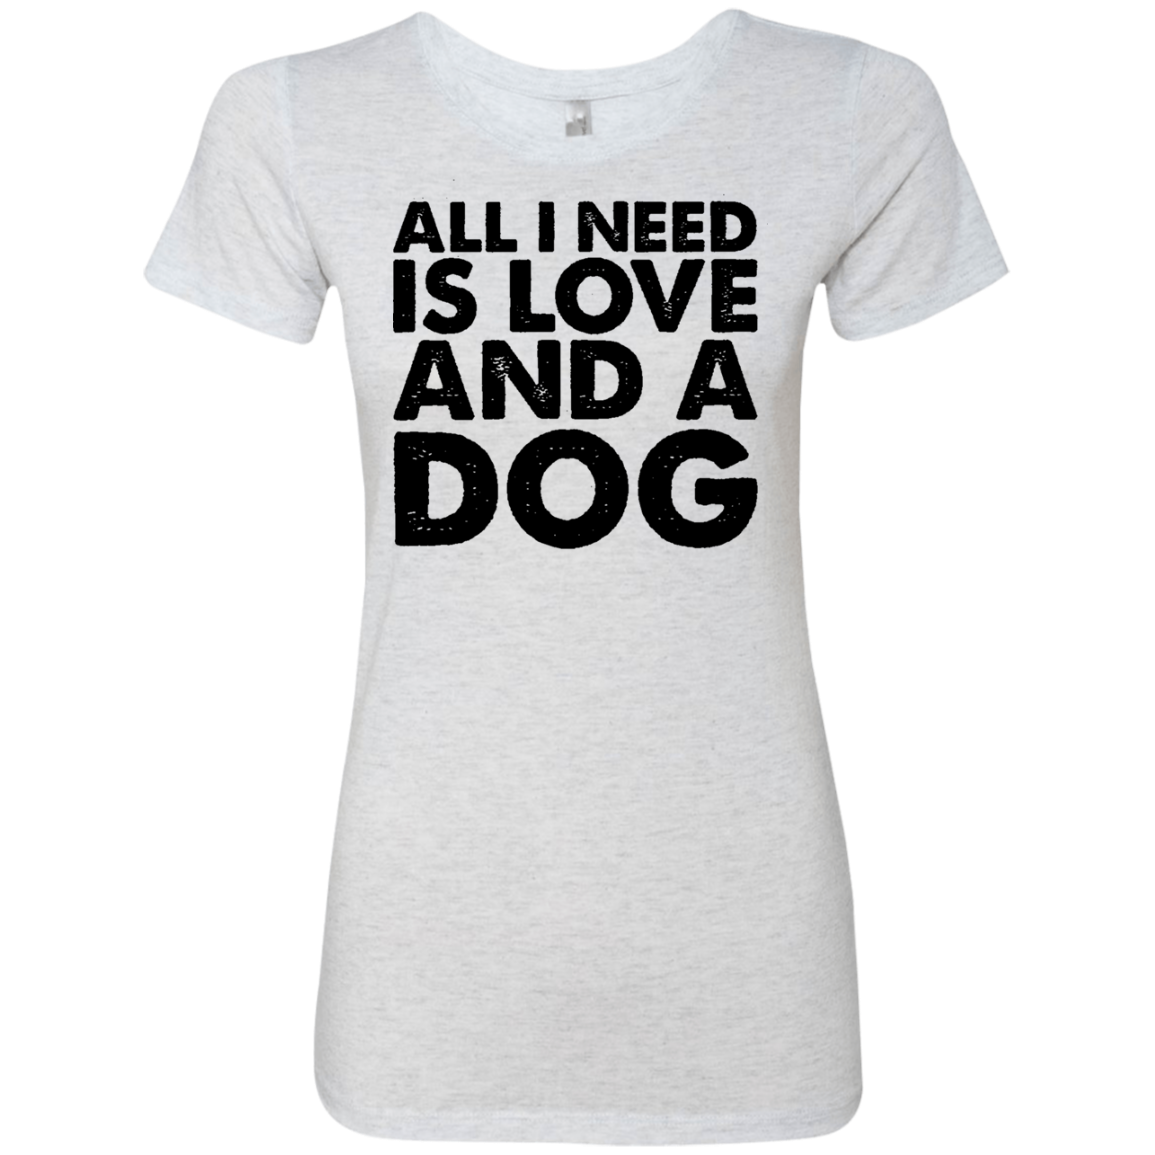 All I Need is Love and a Dog Women's Classic Tee